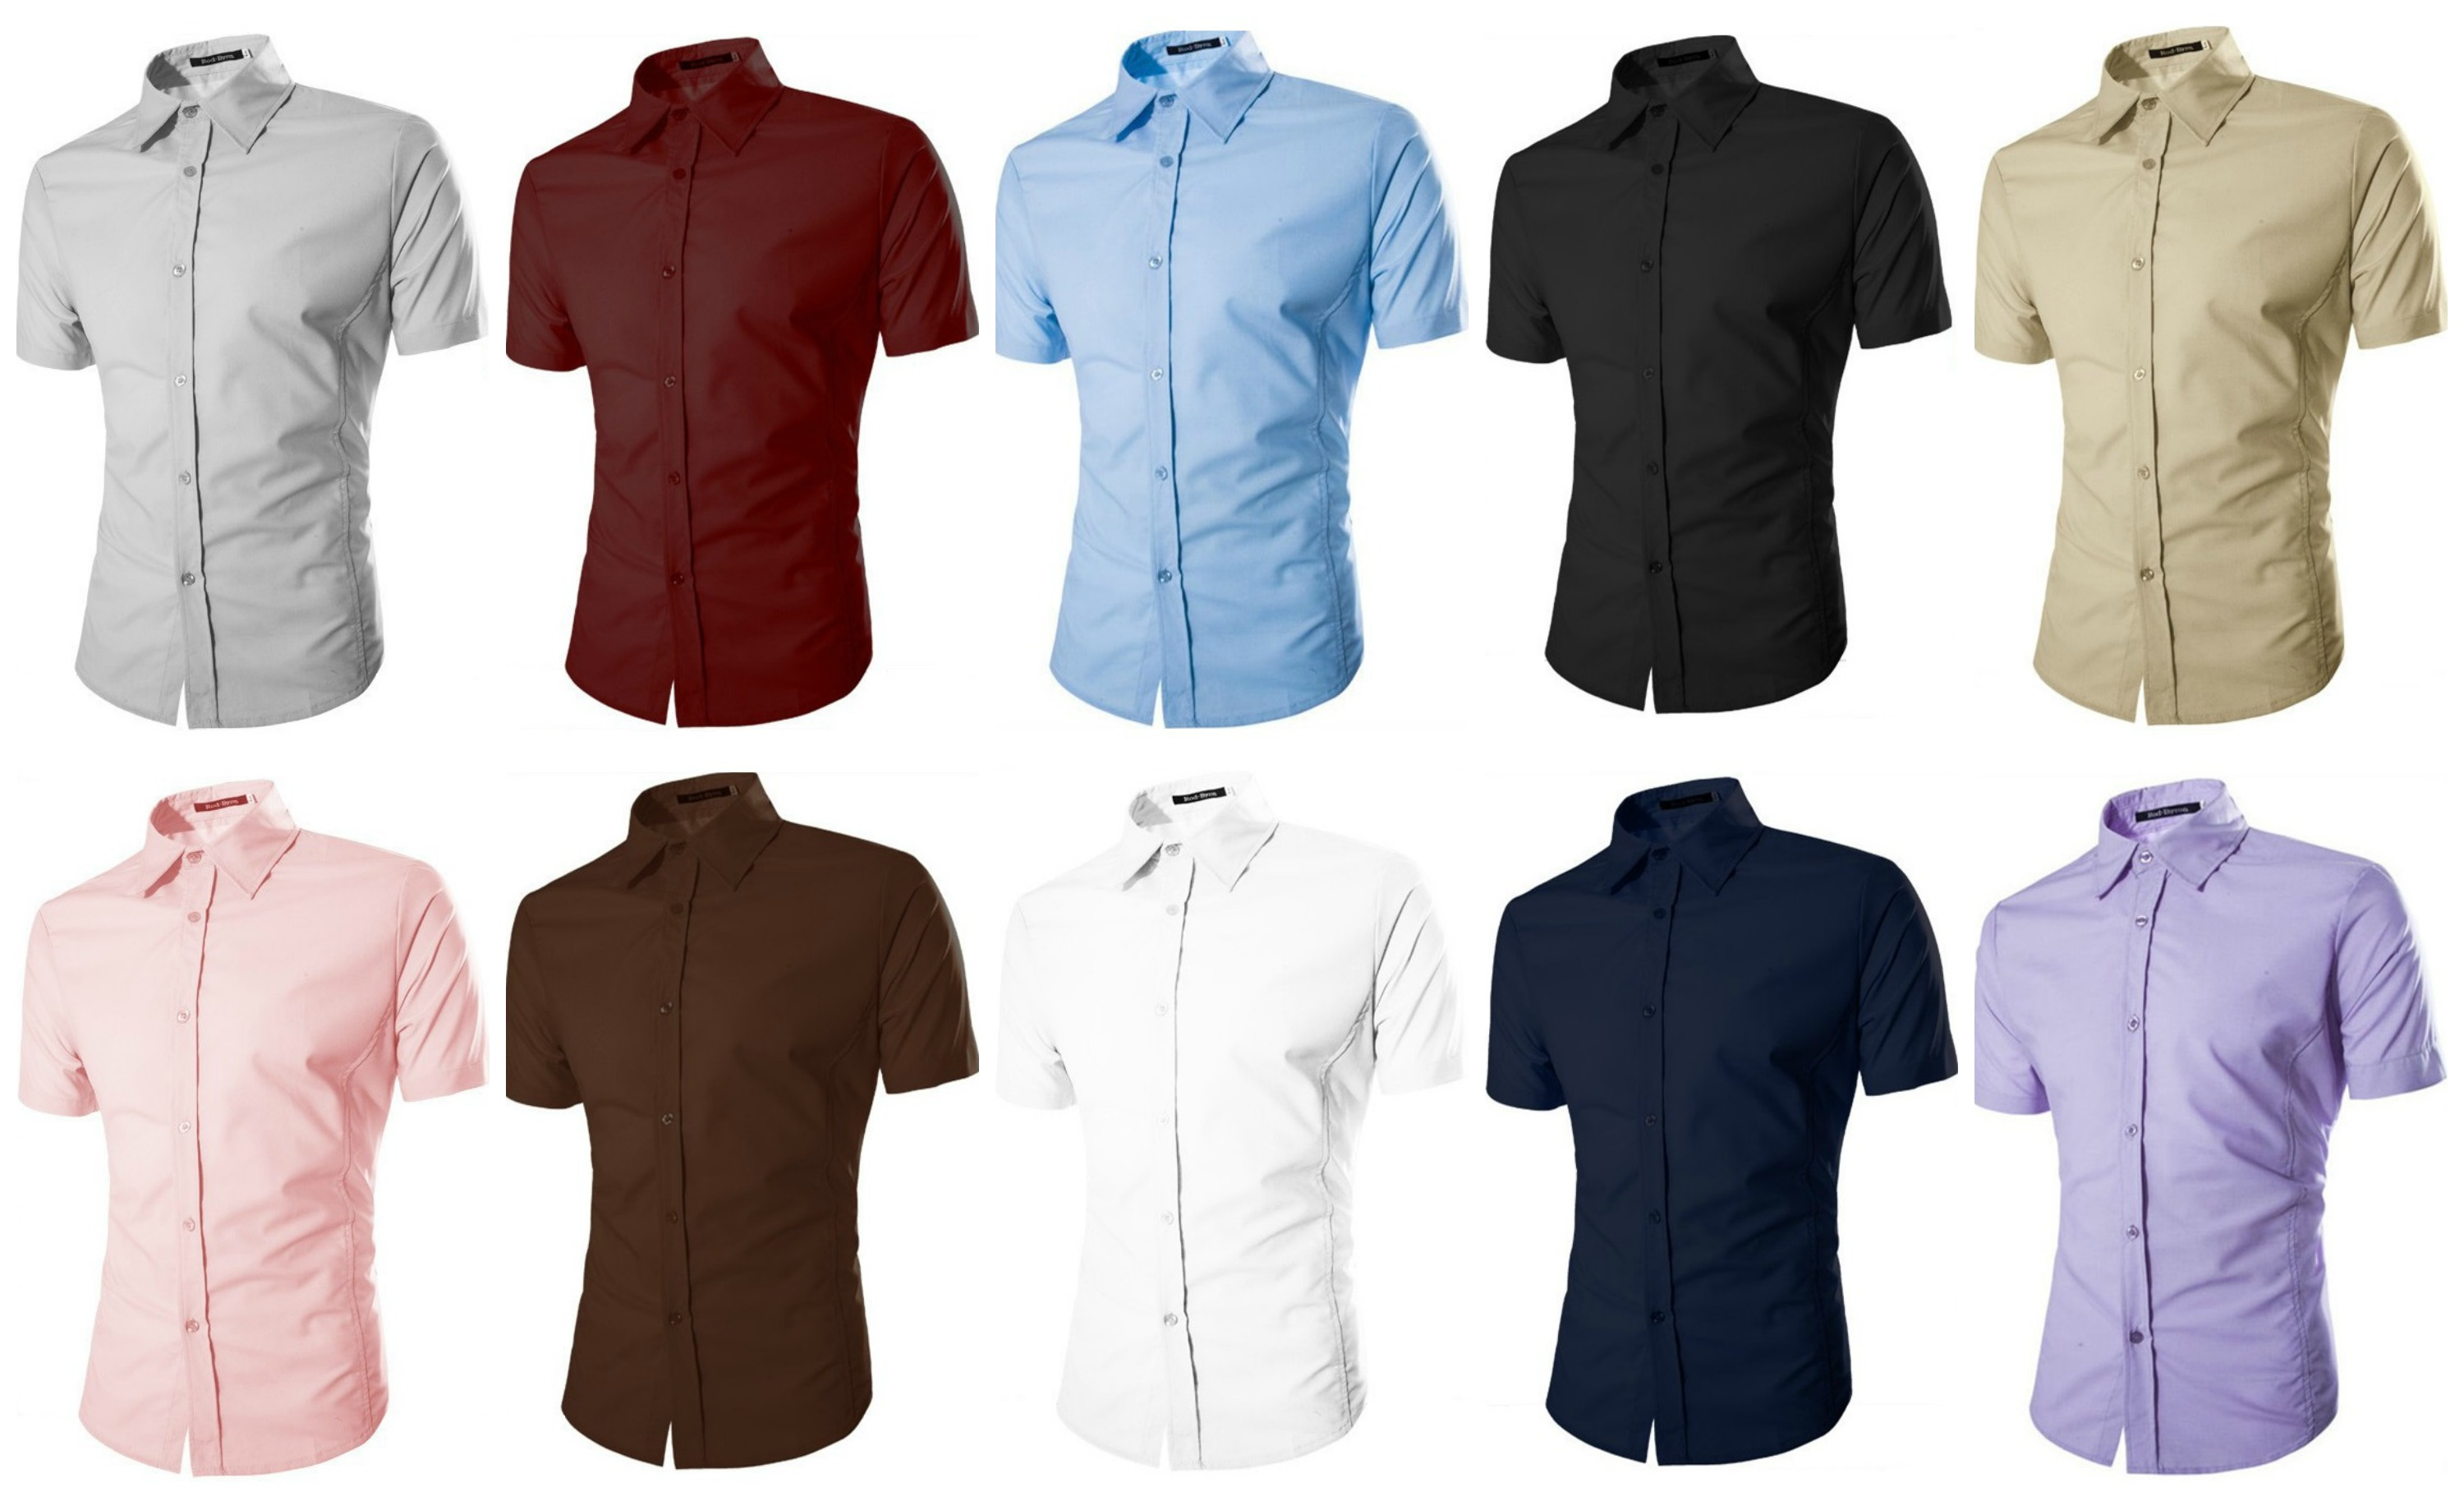 Camisa Casual Fashion Manga Corta - Color Solido